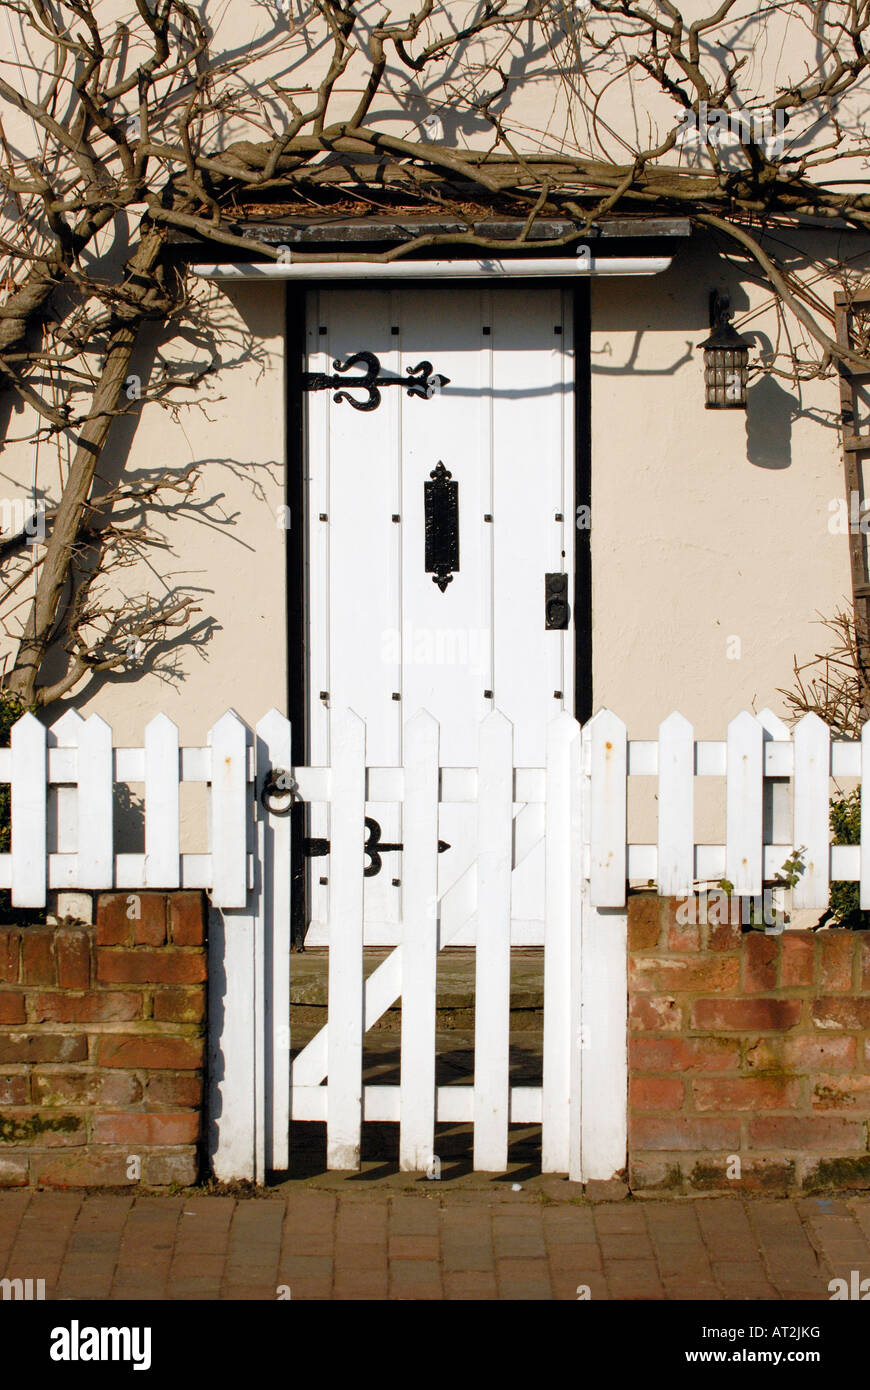 The Front Door Of A Typical Picturesque English Country Cottage With Stock Ph